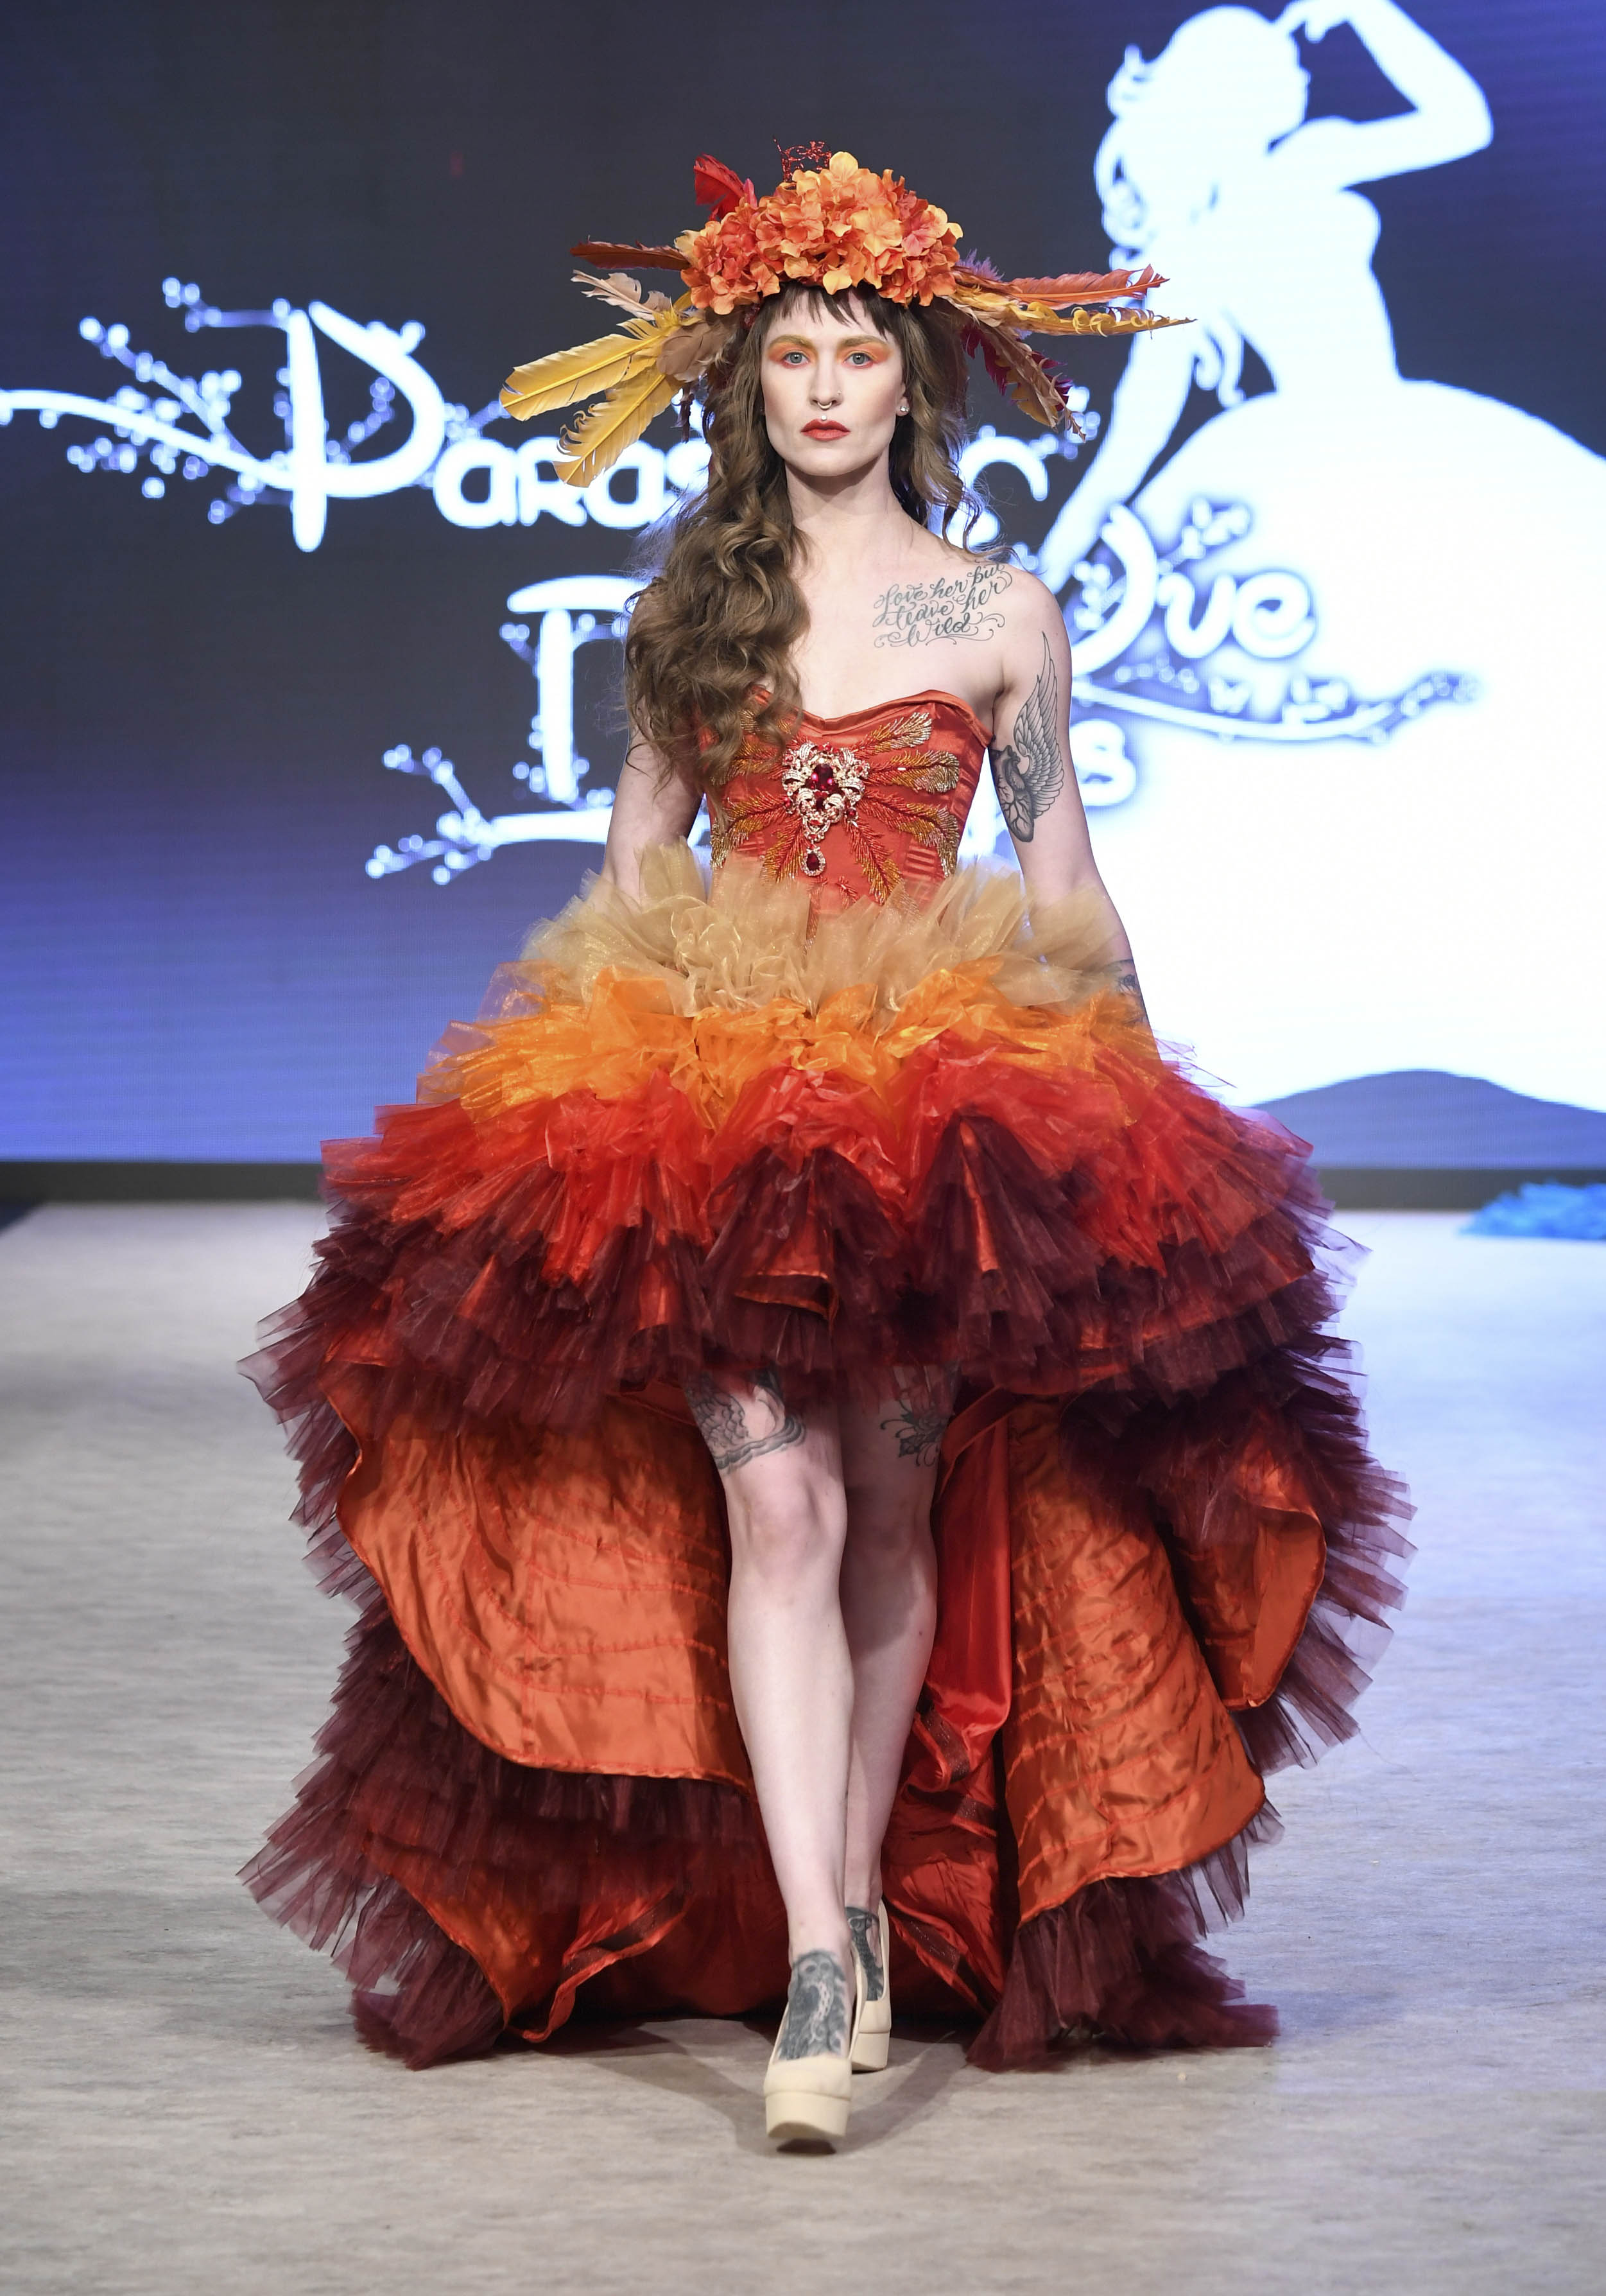 VANCOUVER, BC - SEPTEMBER 18:  A model walks the runway wearing Parasite Eve Designs at Vancouver Fashion Week Spring/Summer 19 - Day 2 on September 18, 2018 in Vancouver, Canada.  (Photo by Arun Nevader/Getty Images for VFW Management INC)